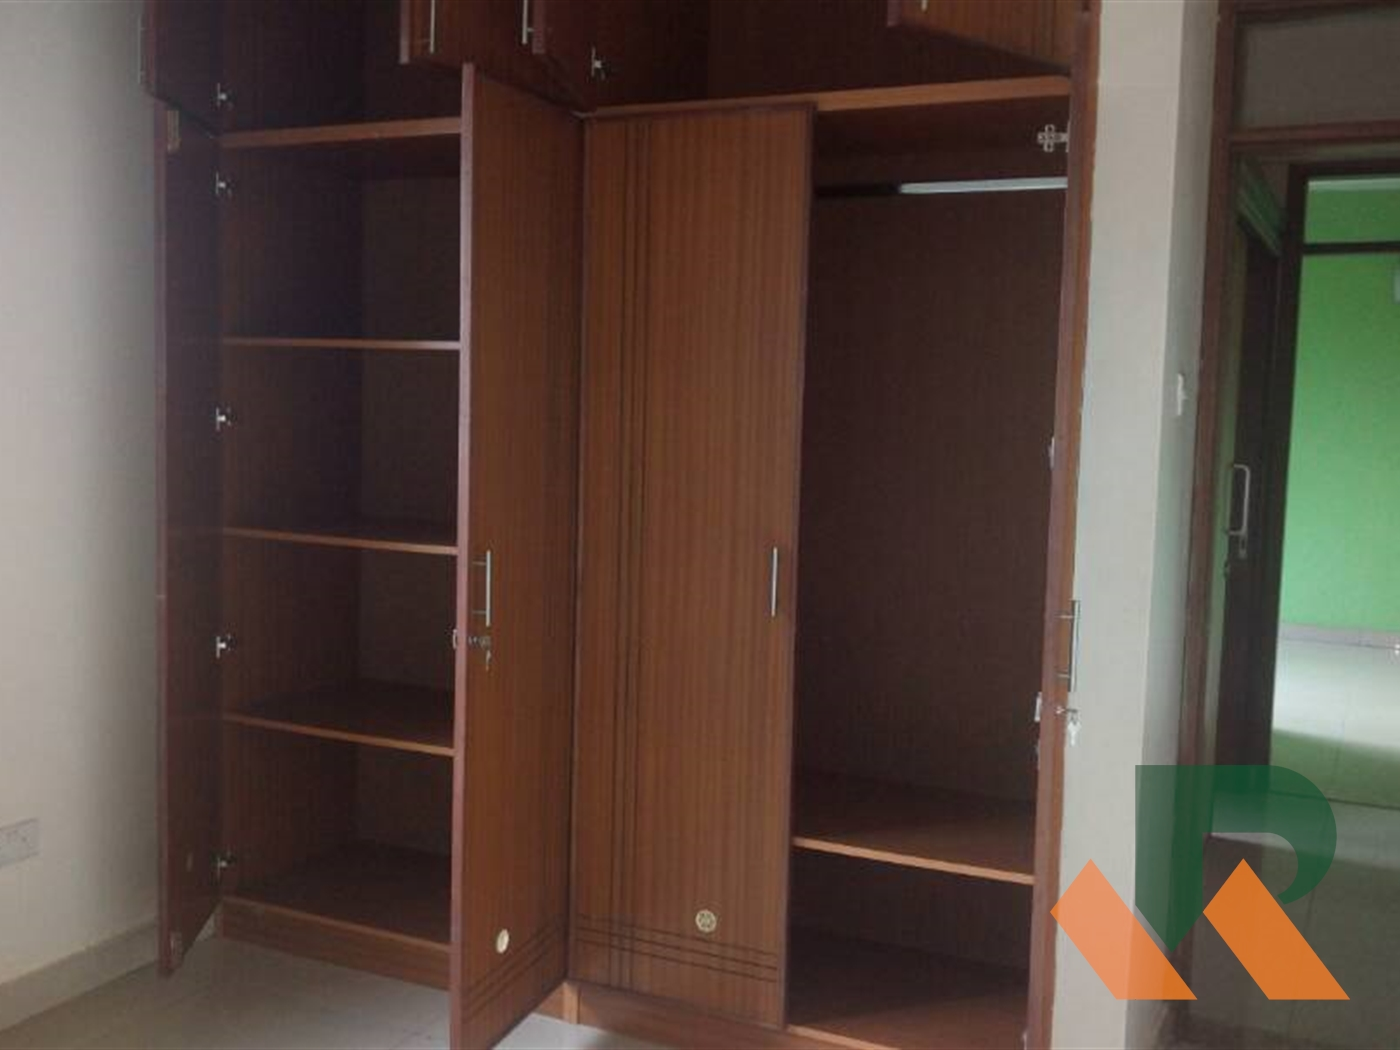 Apartment for rent in Kamwokya Kampala